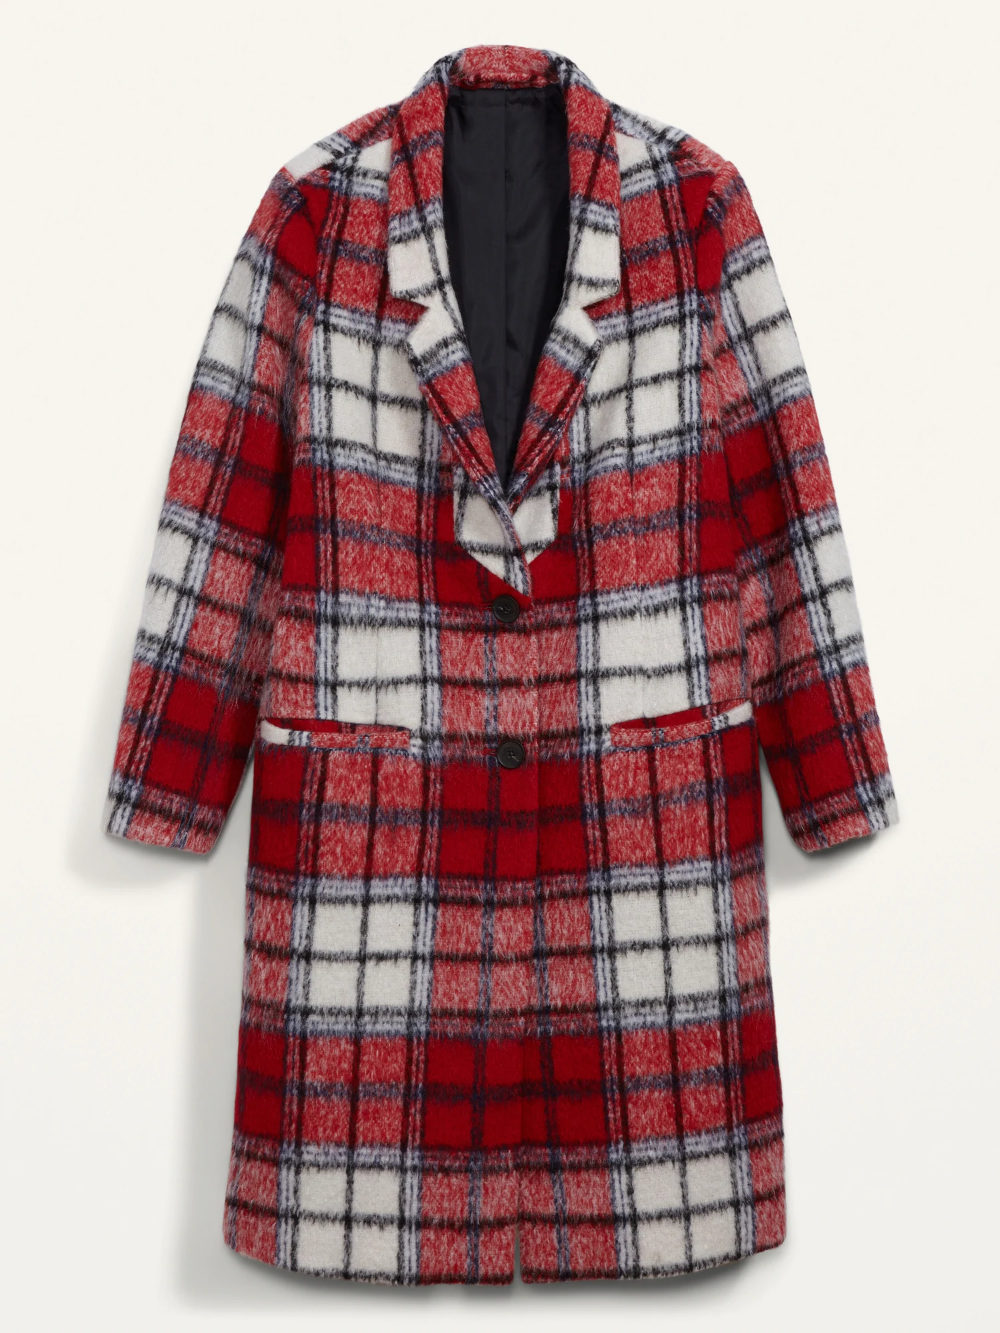 Old Navy - Oversized Soft-Brushed Plaid Overcoat for Women